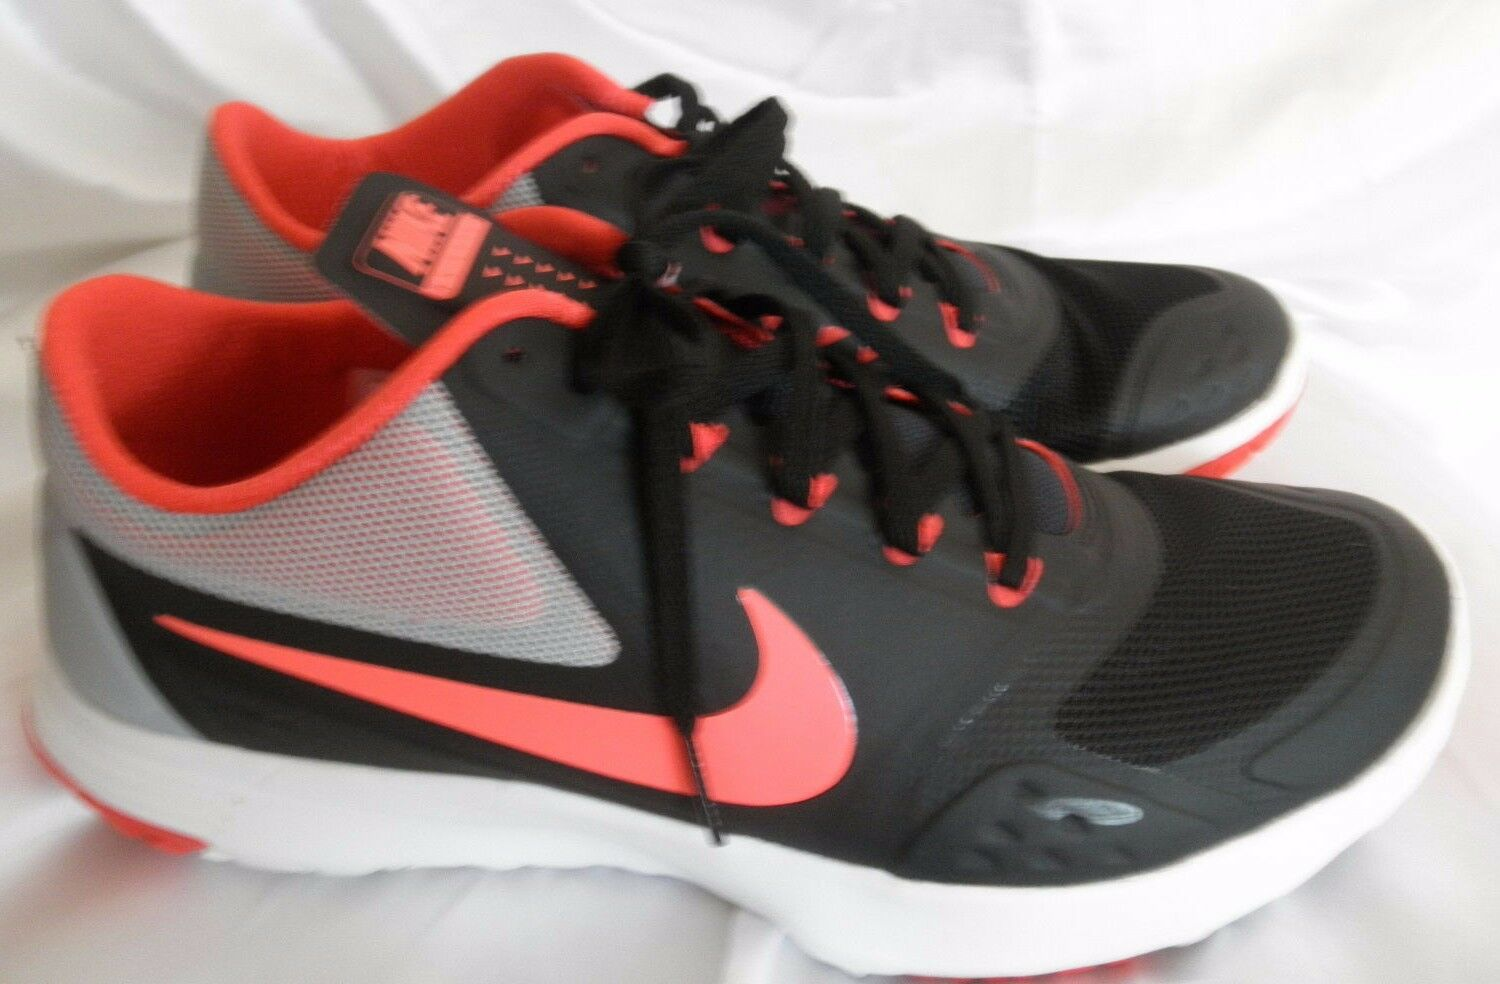 New Nike FS Lite Trainer 2  Fitsole Cushion Support Black Orange  9.5 Gym Shoes